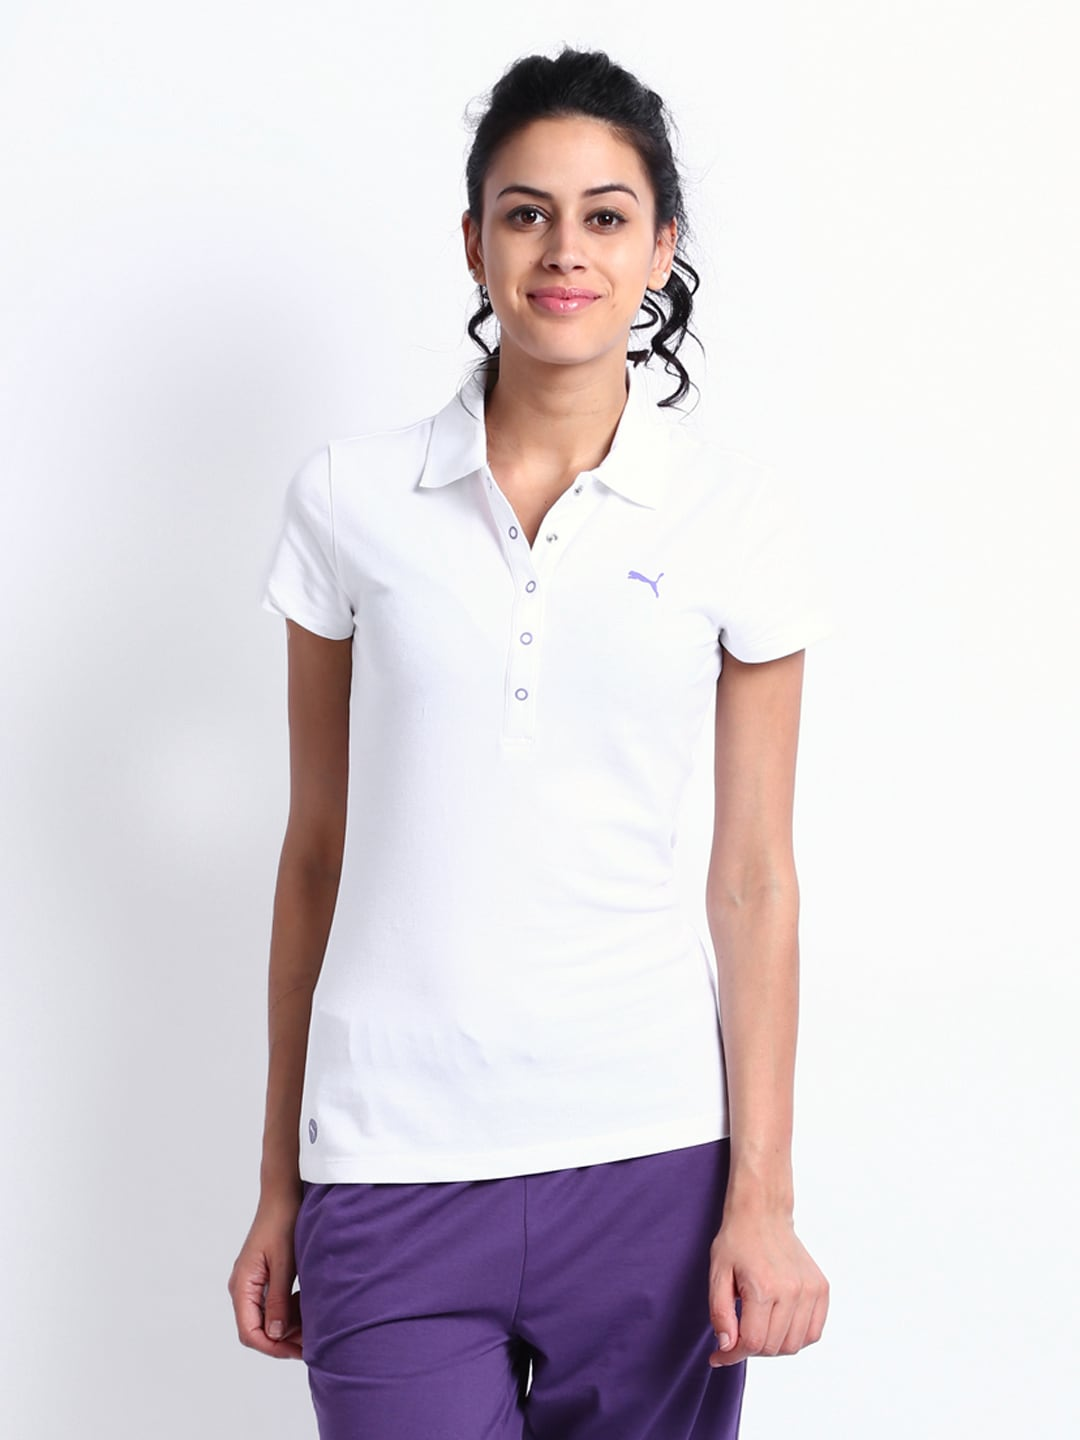 polo single girls Wilson polo shirt junior girls this wilson polo shirt has a regular fold over collar with a single button fastening placket it has short sleeves and mesh panelling to allow the skin to breathe easily.